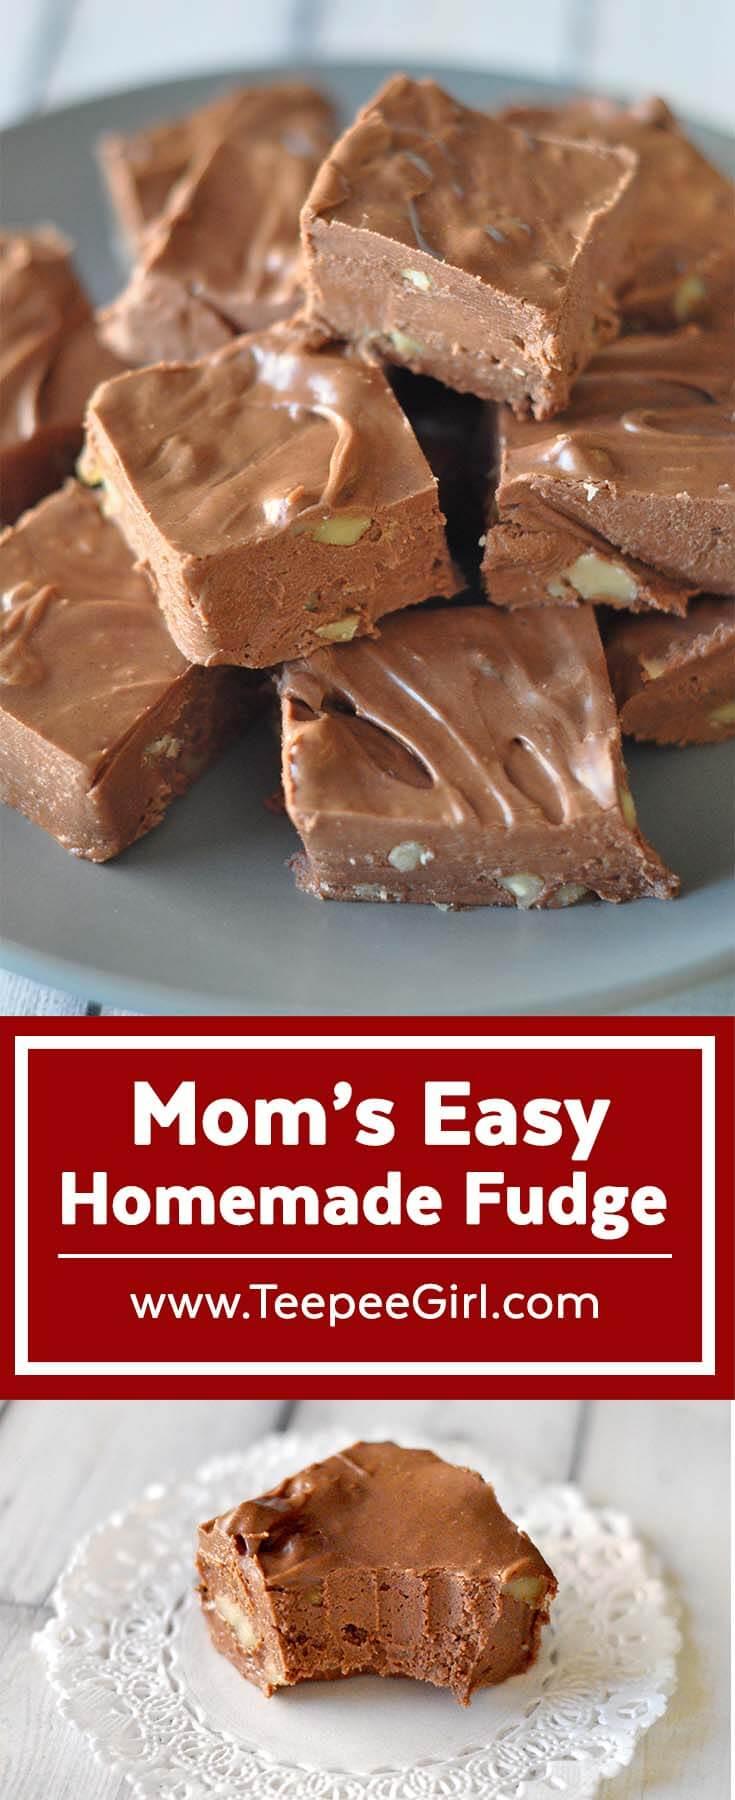 My mom has been making this fudge for as long as I can remember. It's creamy, decadent, and best of all, easy! Get the recipe at www.TeepeeGirl.com.